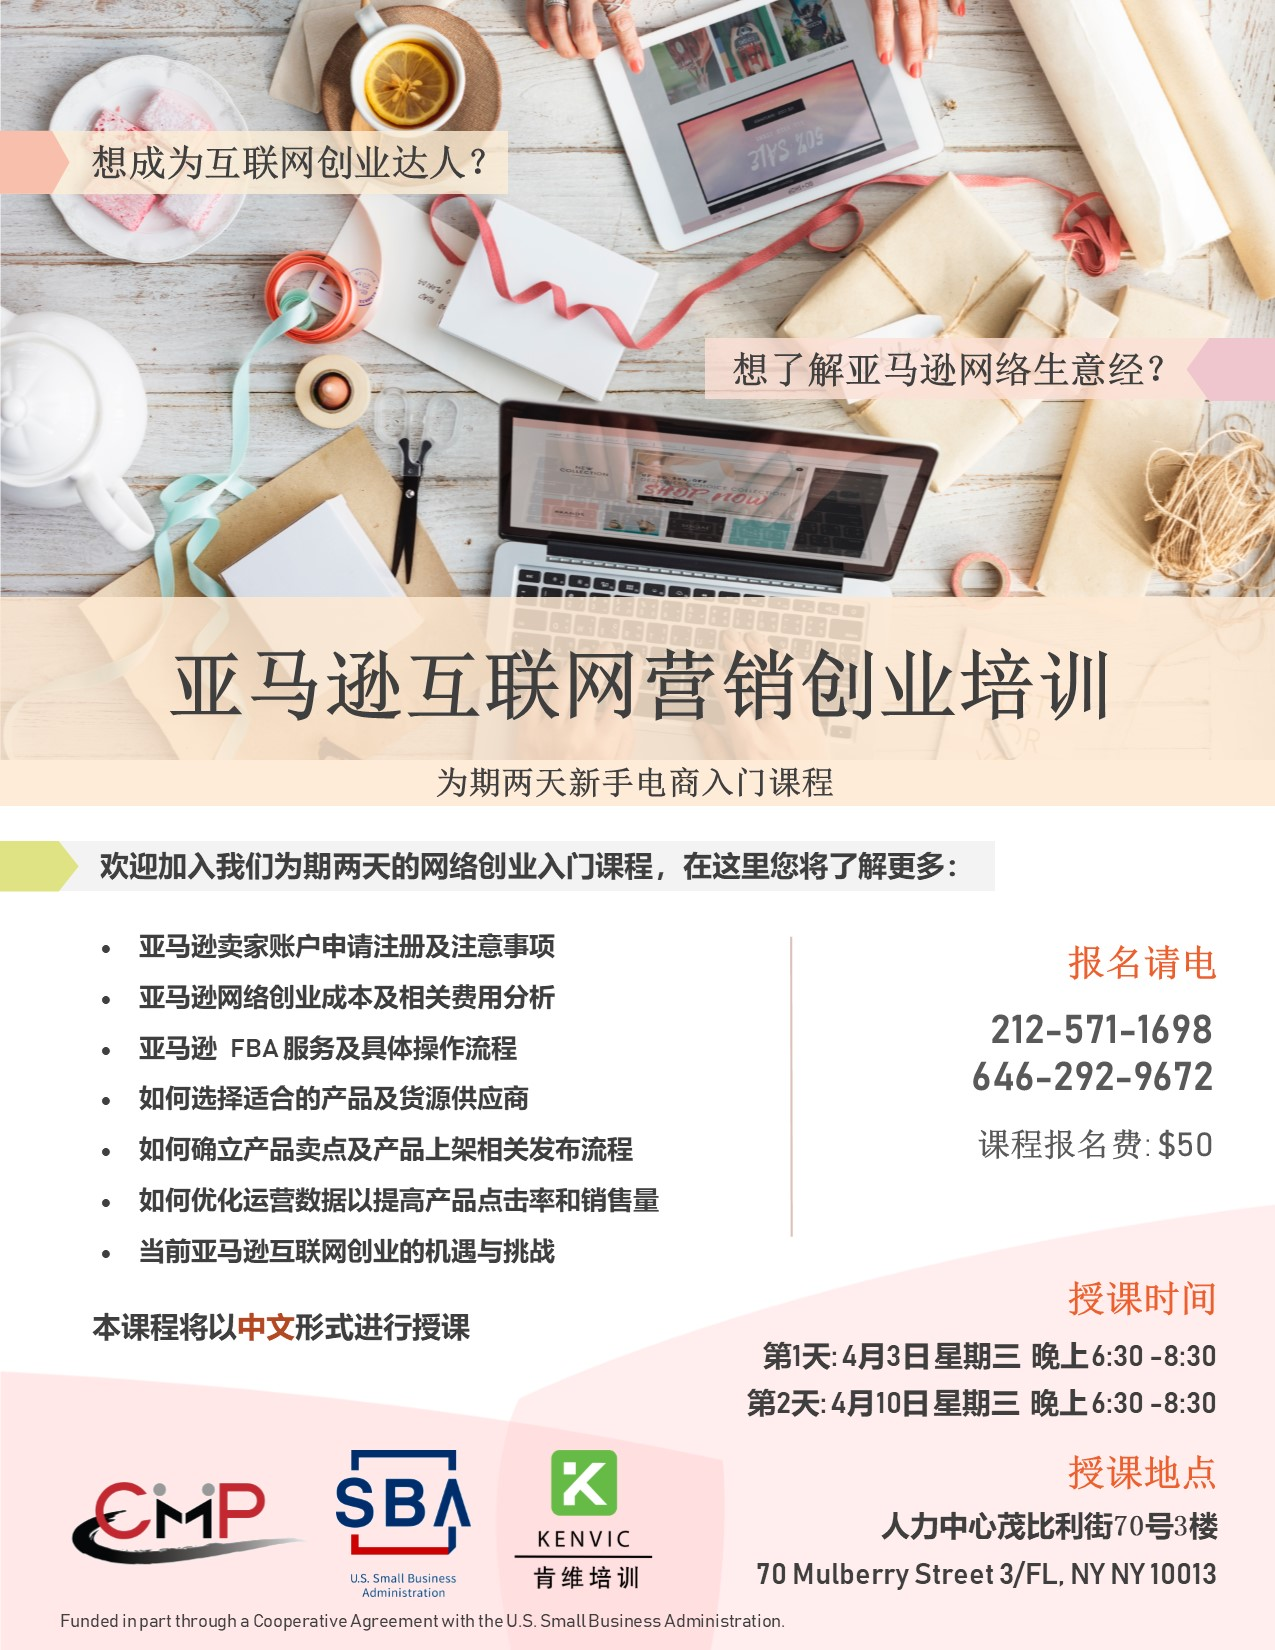 Amazon Training -Chinese Flyer.jpg